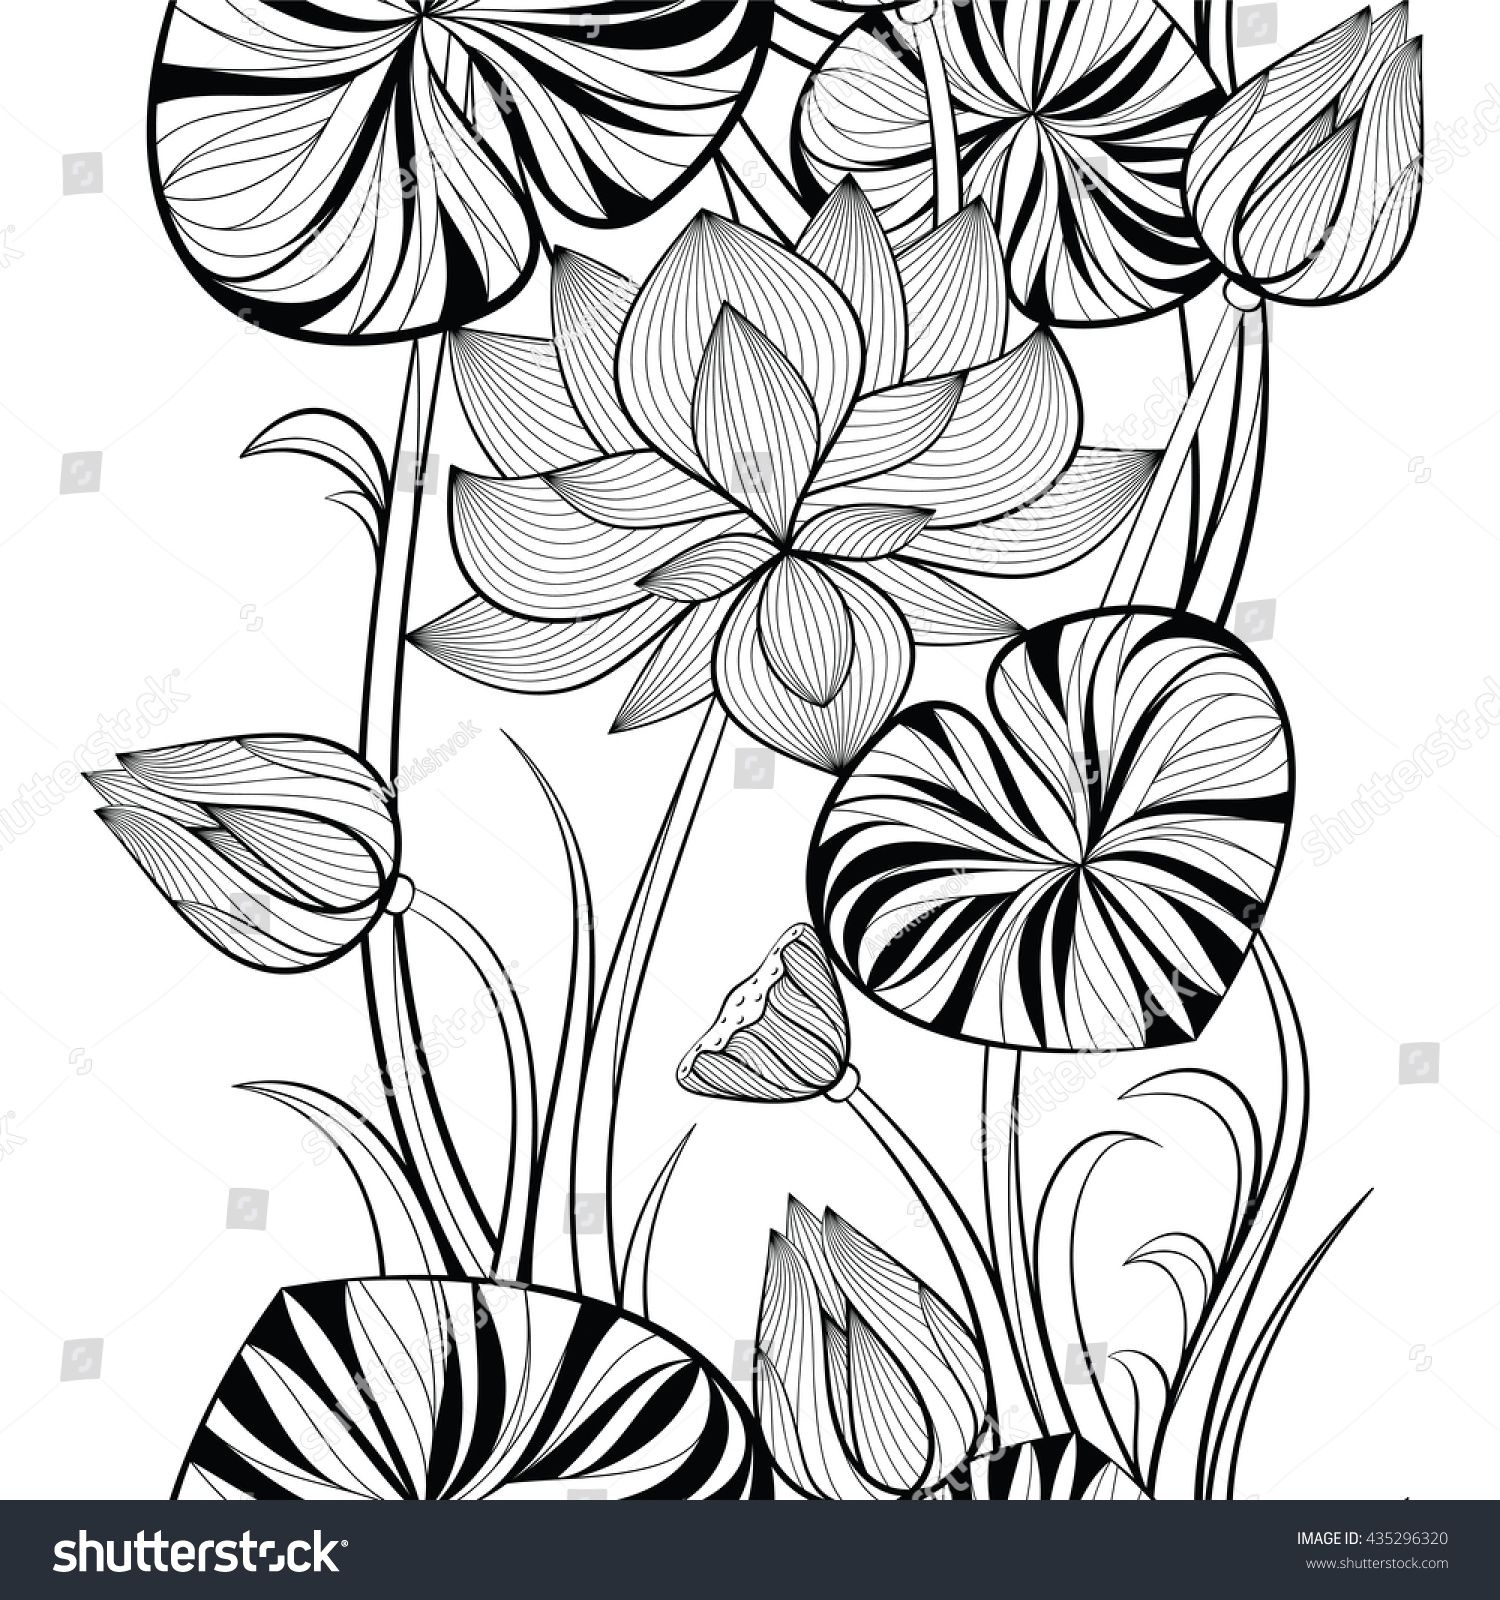 Seamless pattern of lotus flowers and leaves vector illustration in seamless pattern of lotus flowers and leaves vector illustration in doodle style sketch for izmirmasajfo